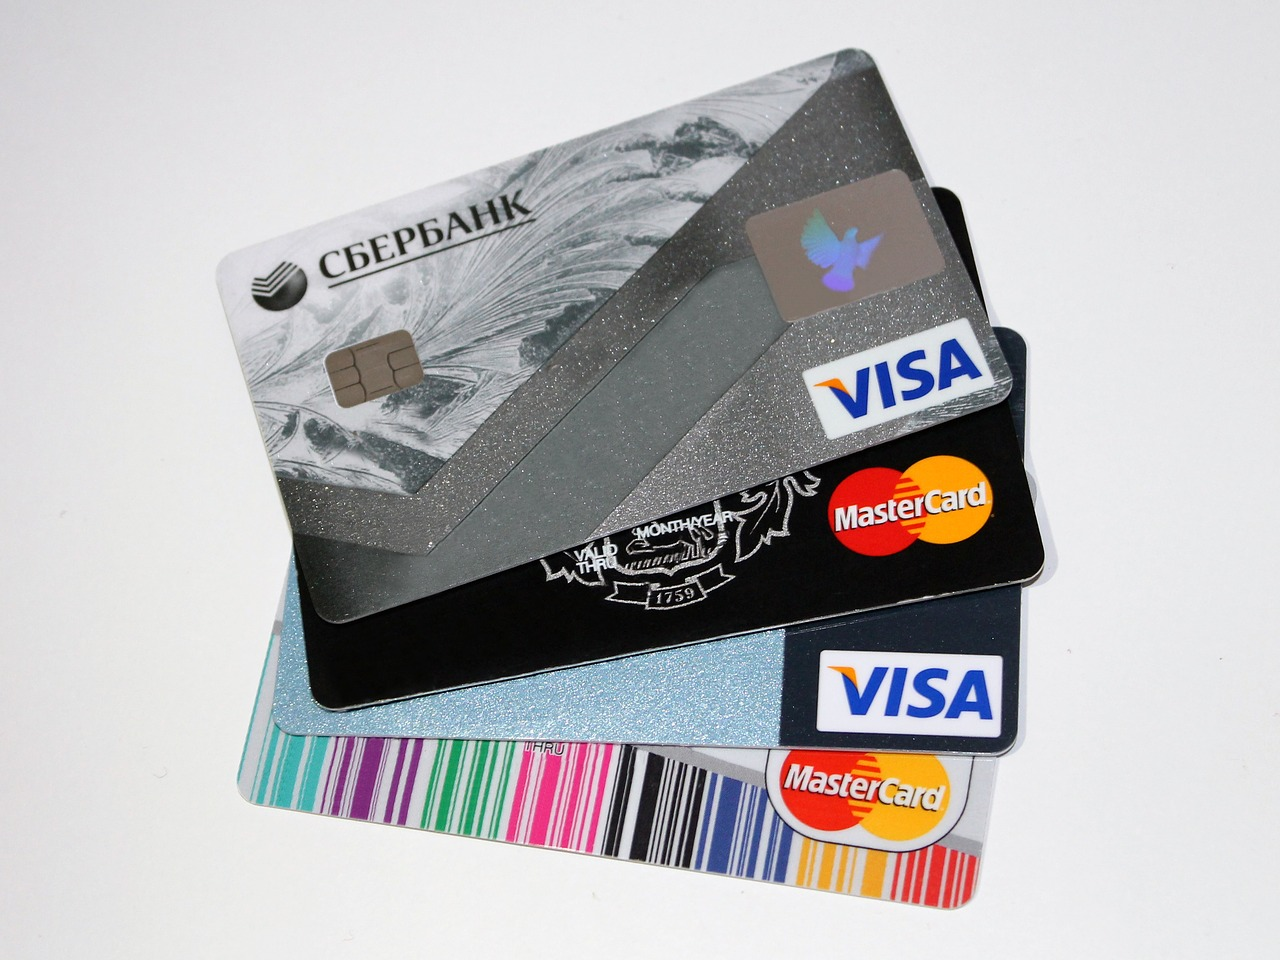 Beware When Joining Writing Sites With Your Credit Card!